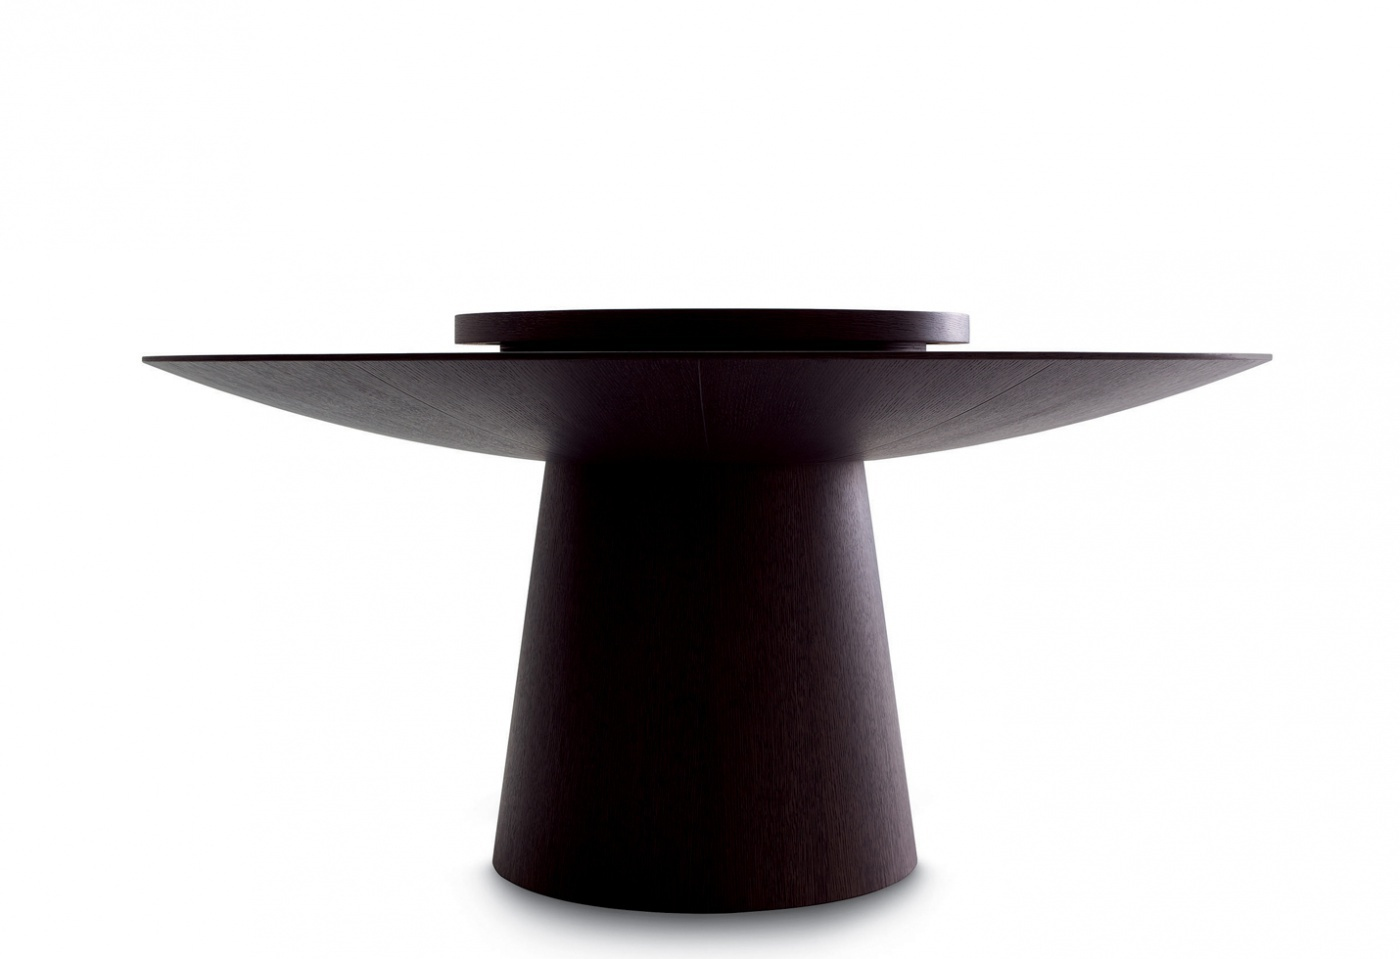 Dining Table Design Ufo Emmemobili Luxury Furniture Mr